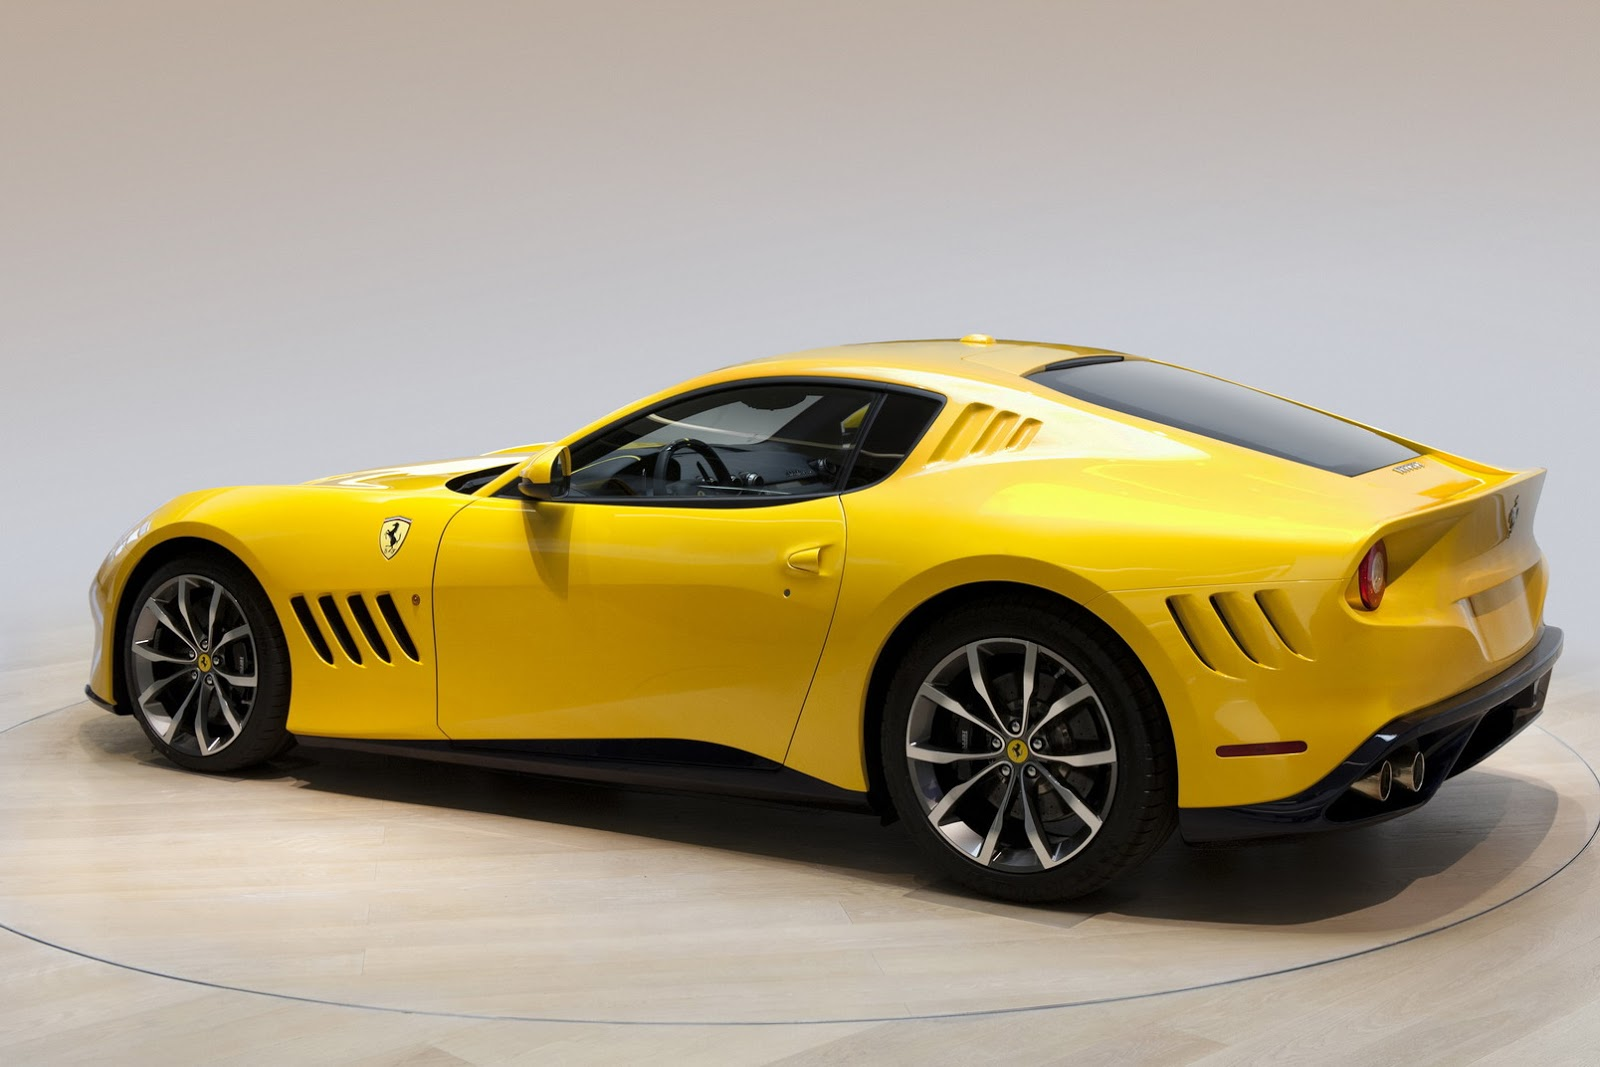 Ferrari Sp 275 Rw Competizione Officially Detailed Uses